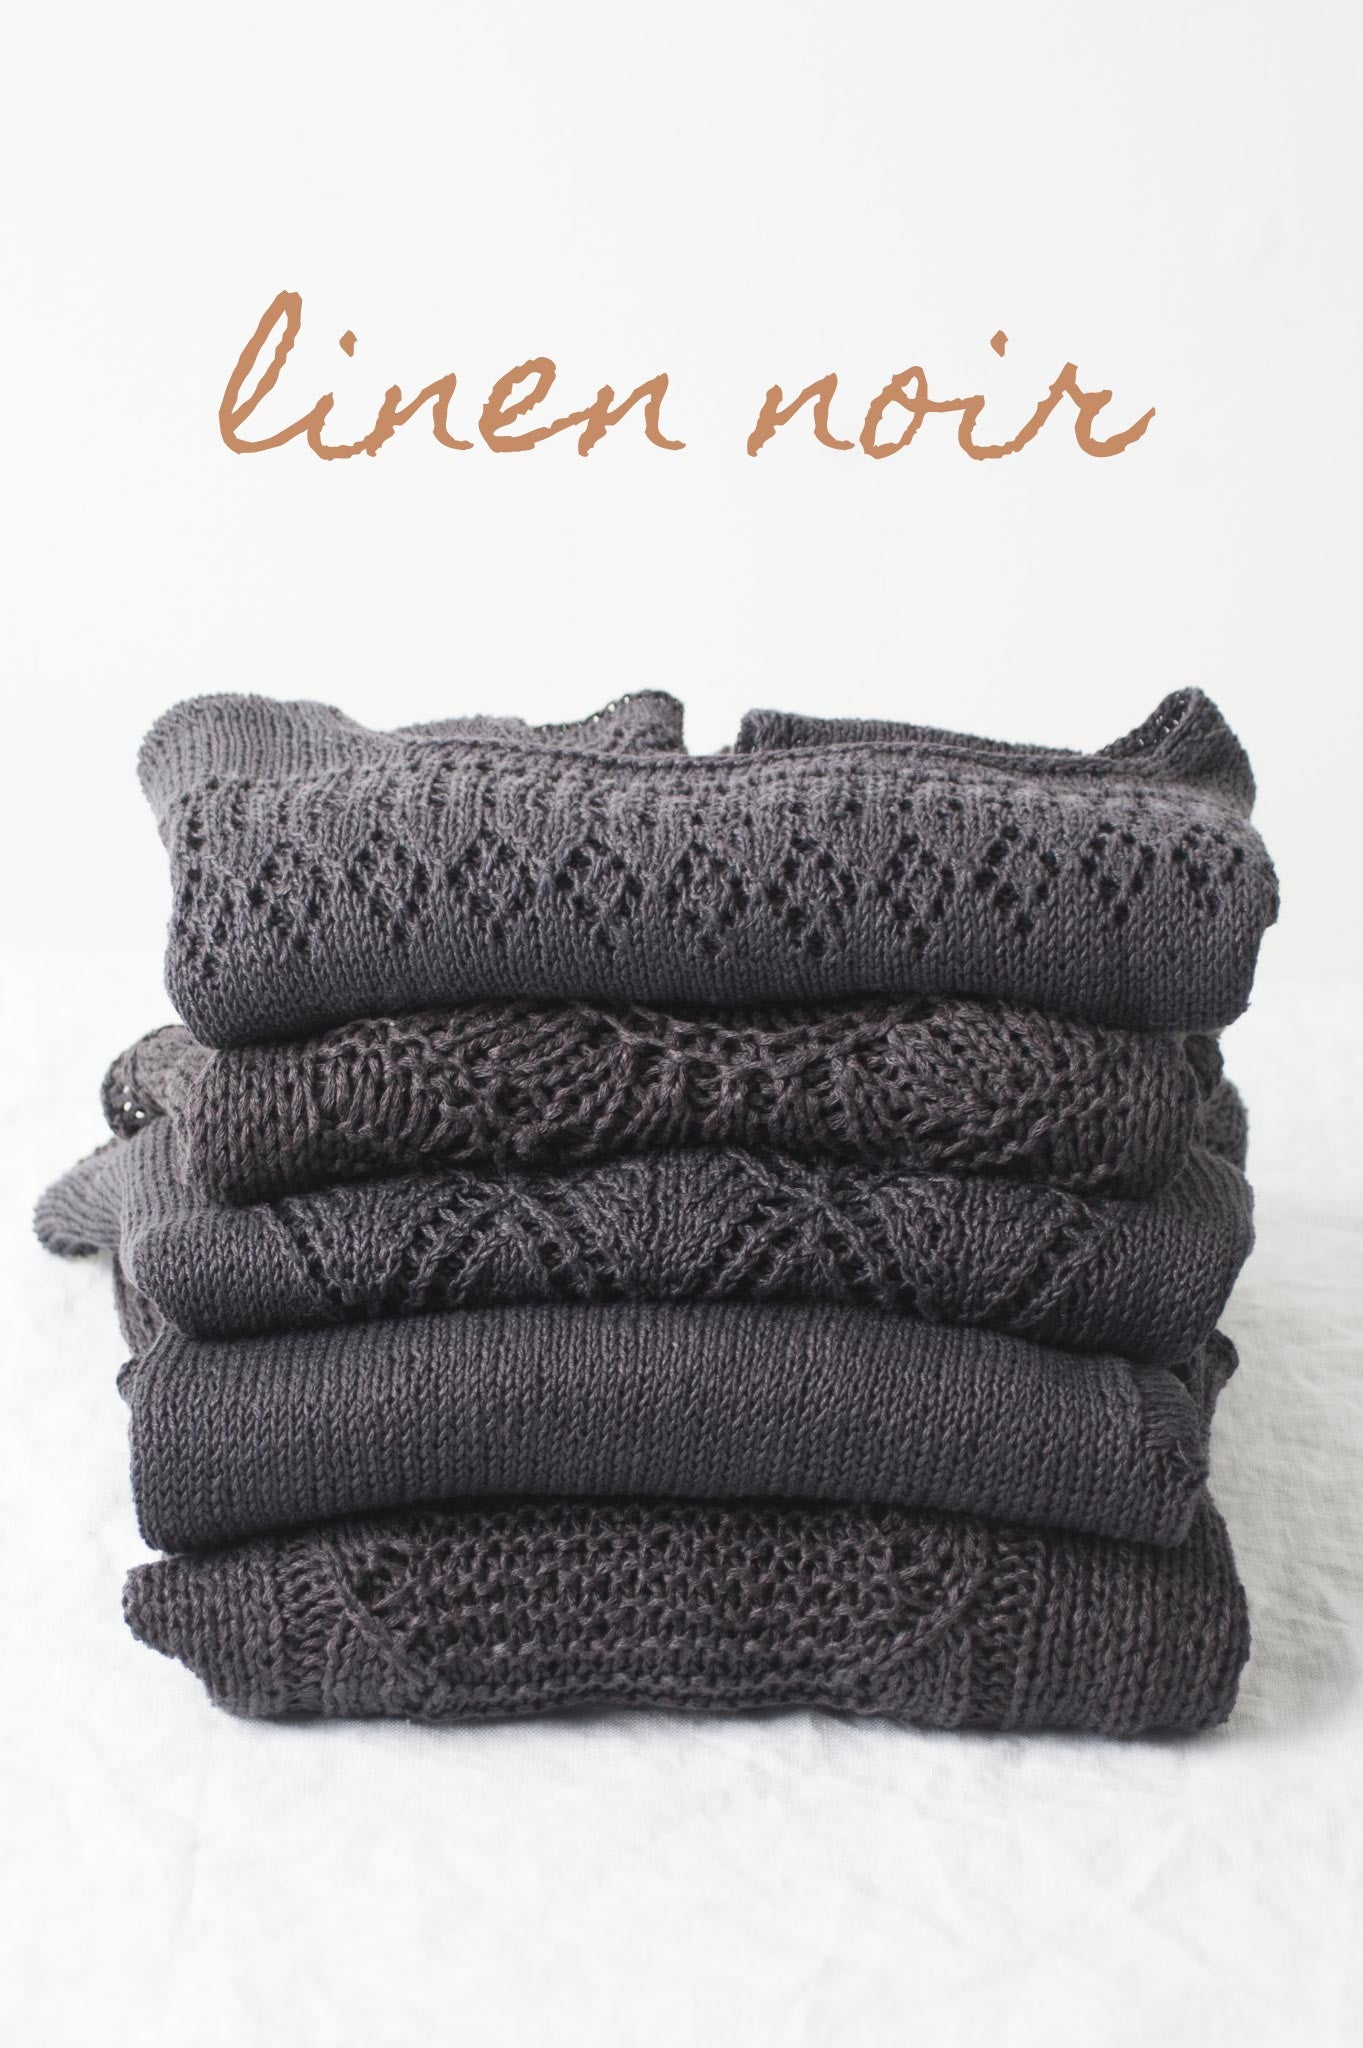 https://quinceandco.com/products/linen-noir-knitting-collection